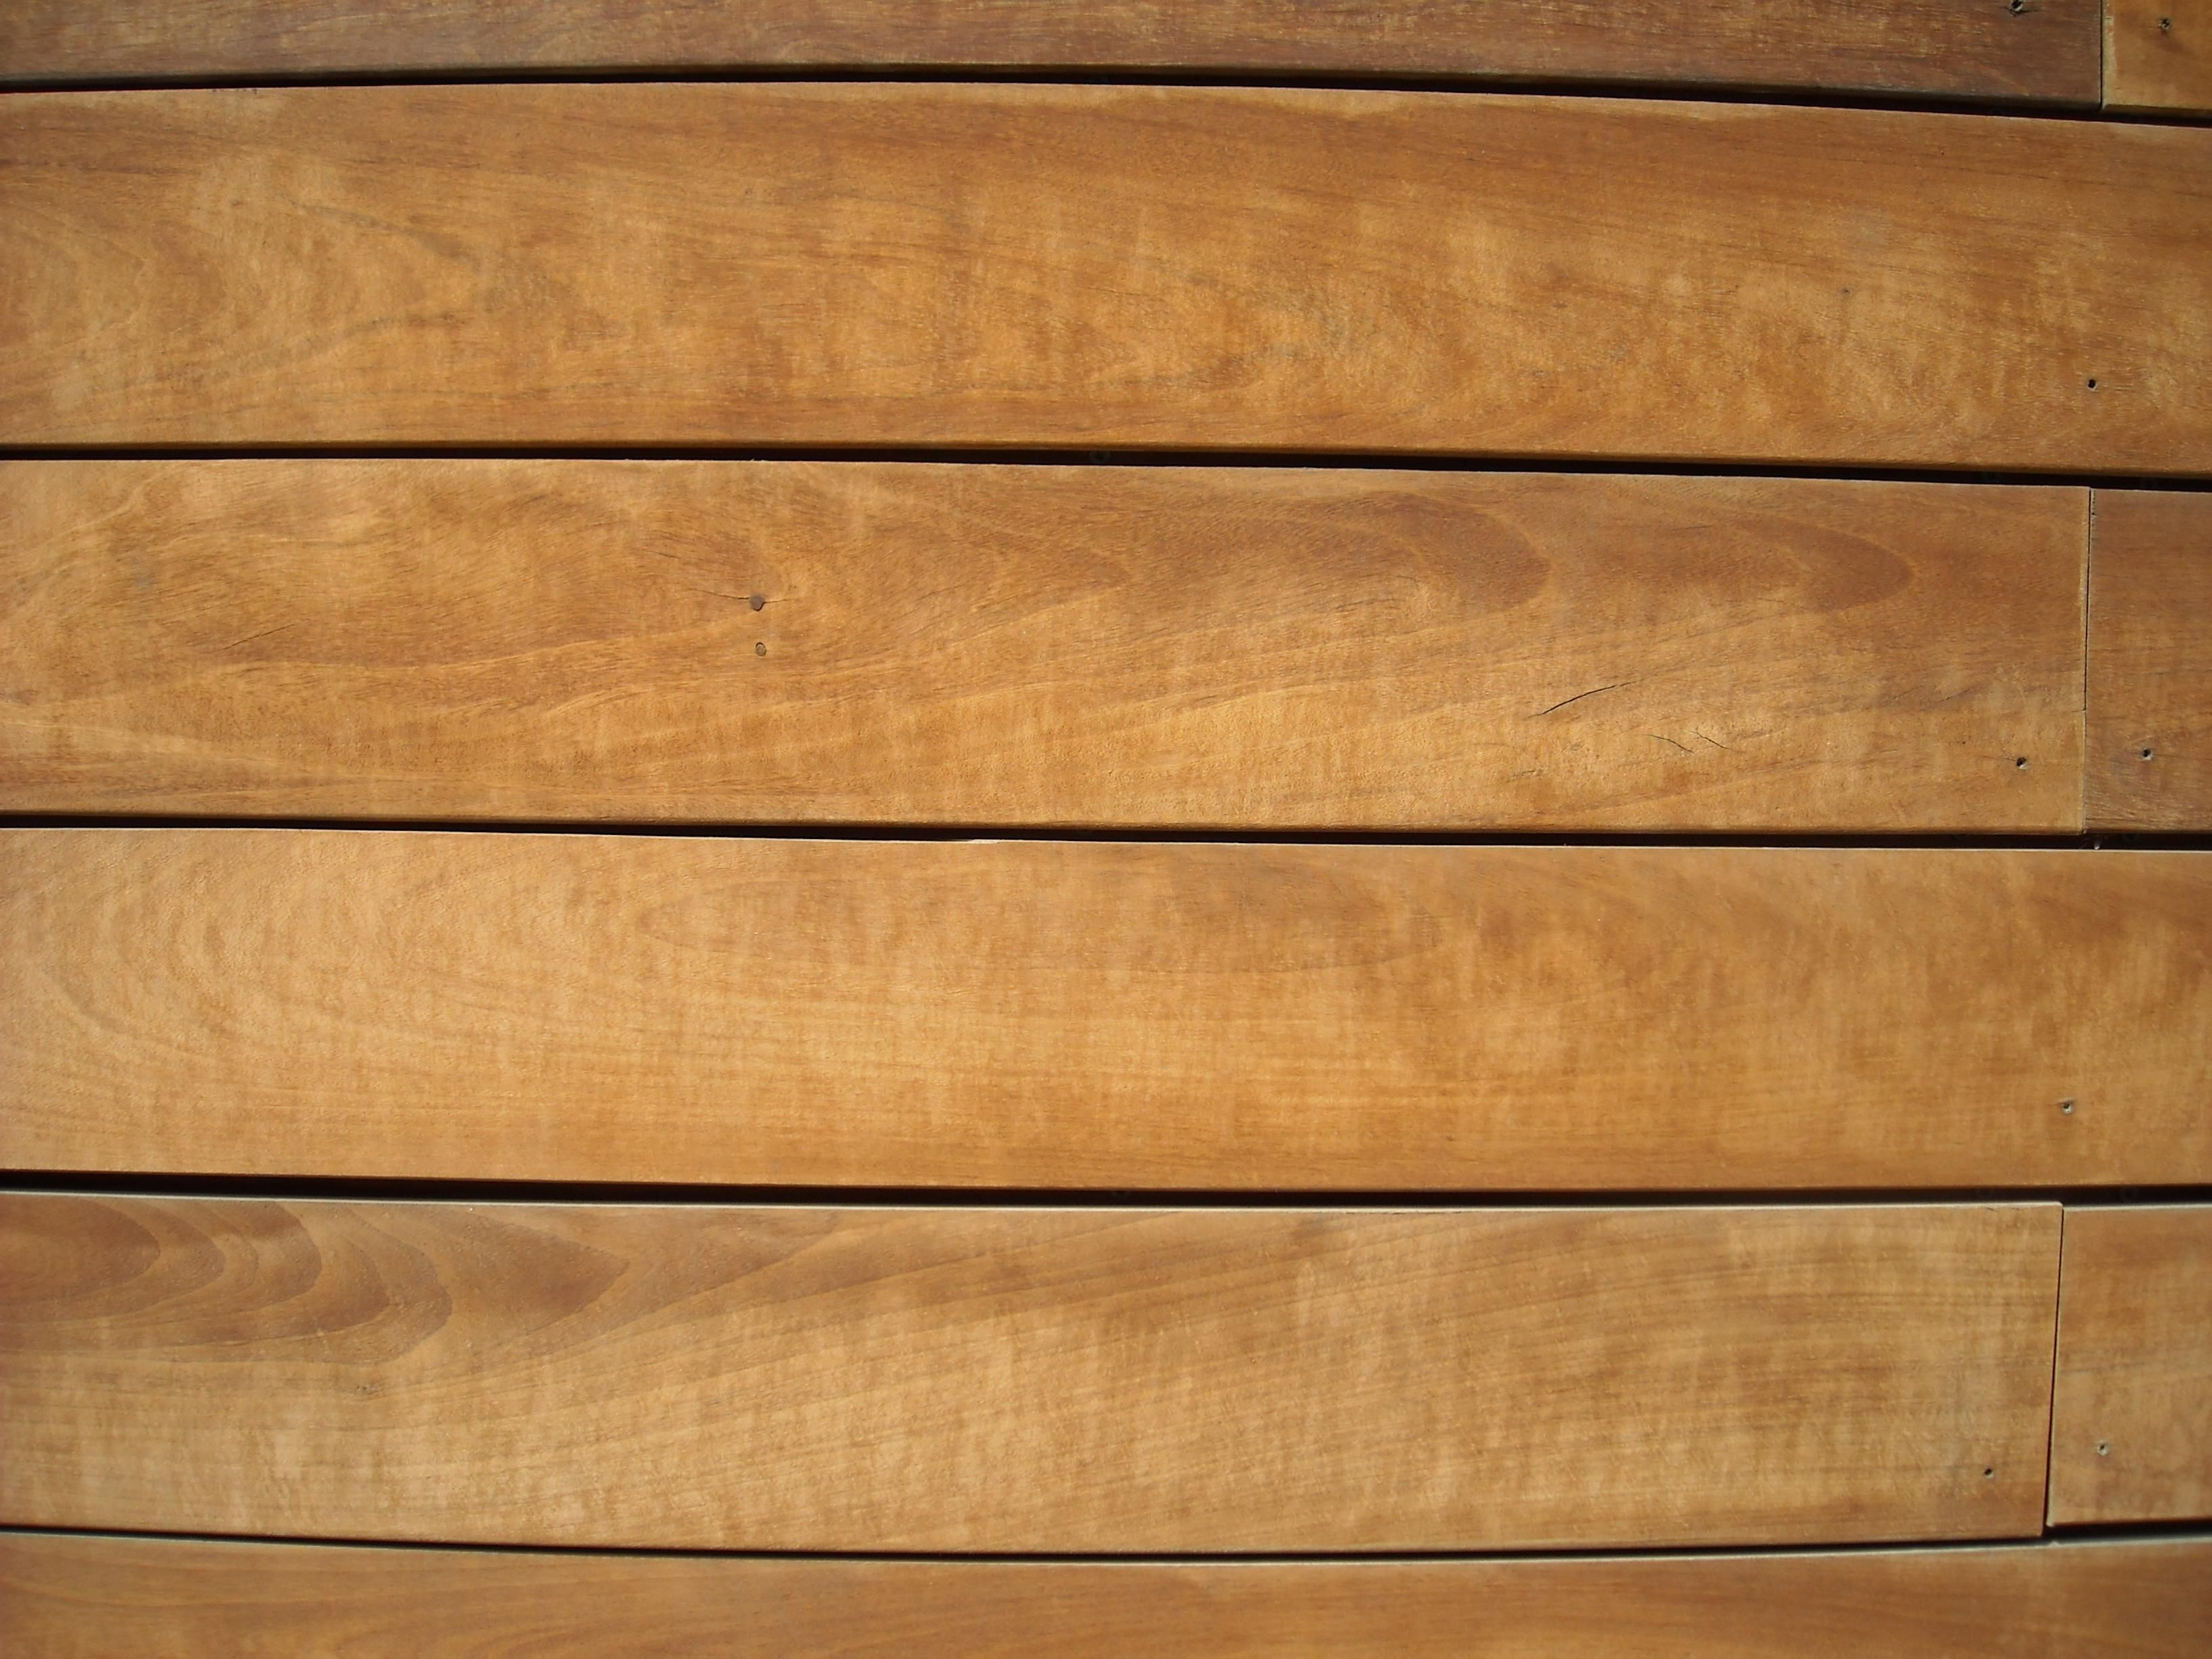 File:Wood pattern high quality.jpg - Wikimedia Commons